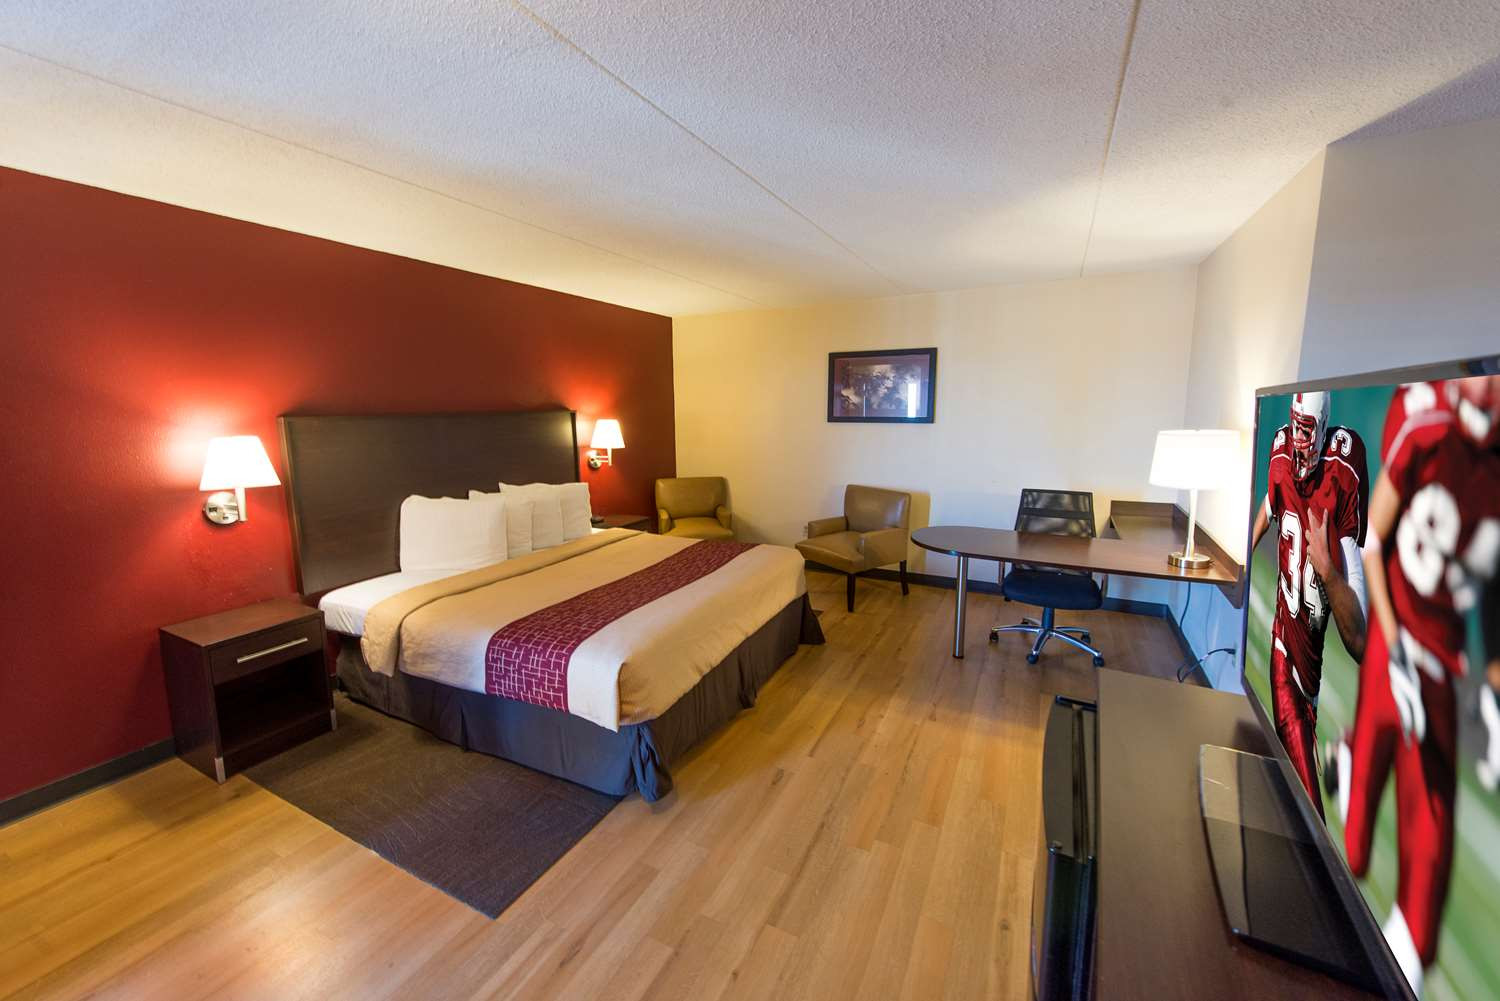 discount hardwood flooring austin tx of red roof inn north austin tx see discounts with room red roof inn north austin